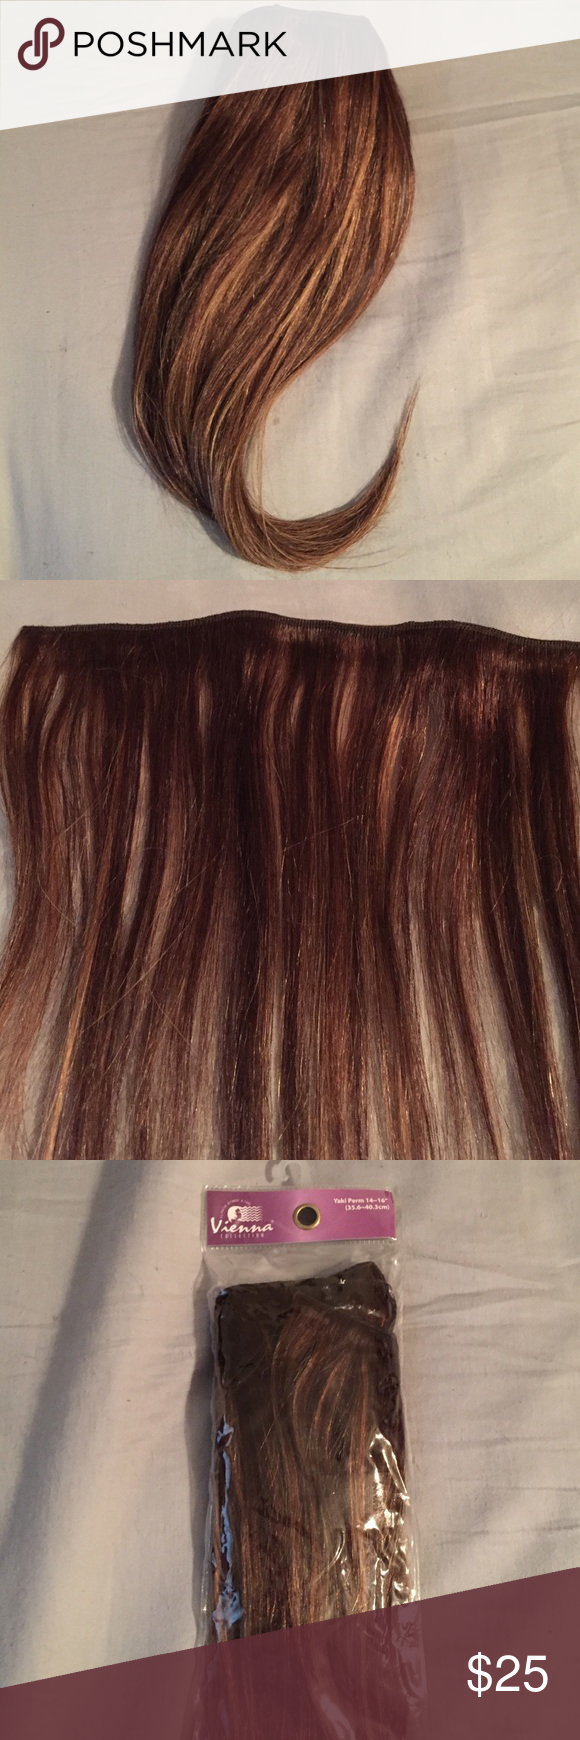 Human Hair Extensions Real Human Hair Extensions Never Been Used